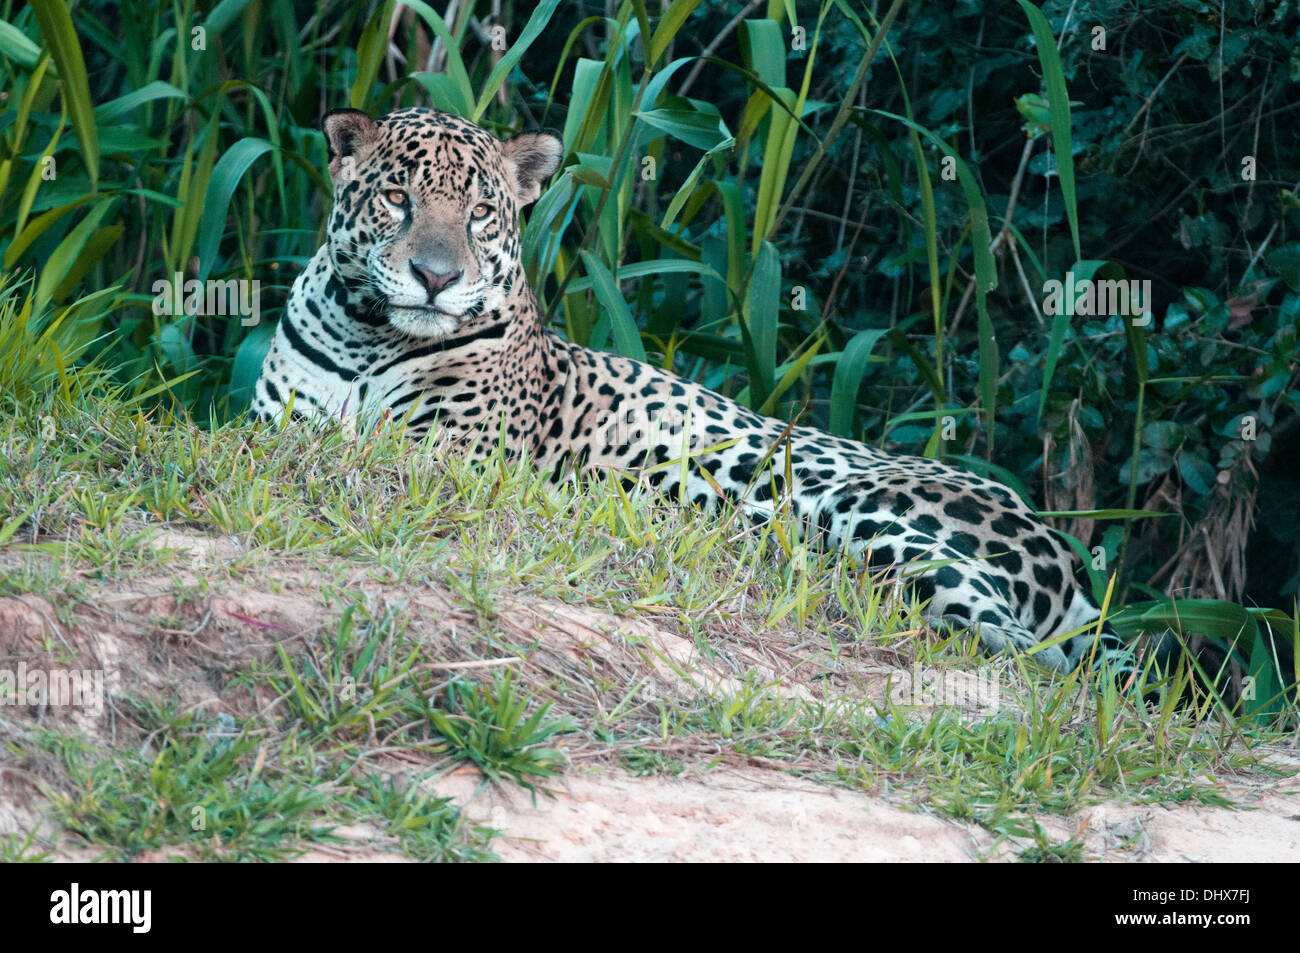 Jaguar in Pantanal region of Brazil - Stock Image